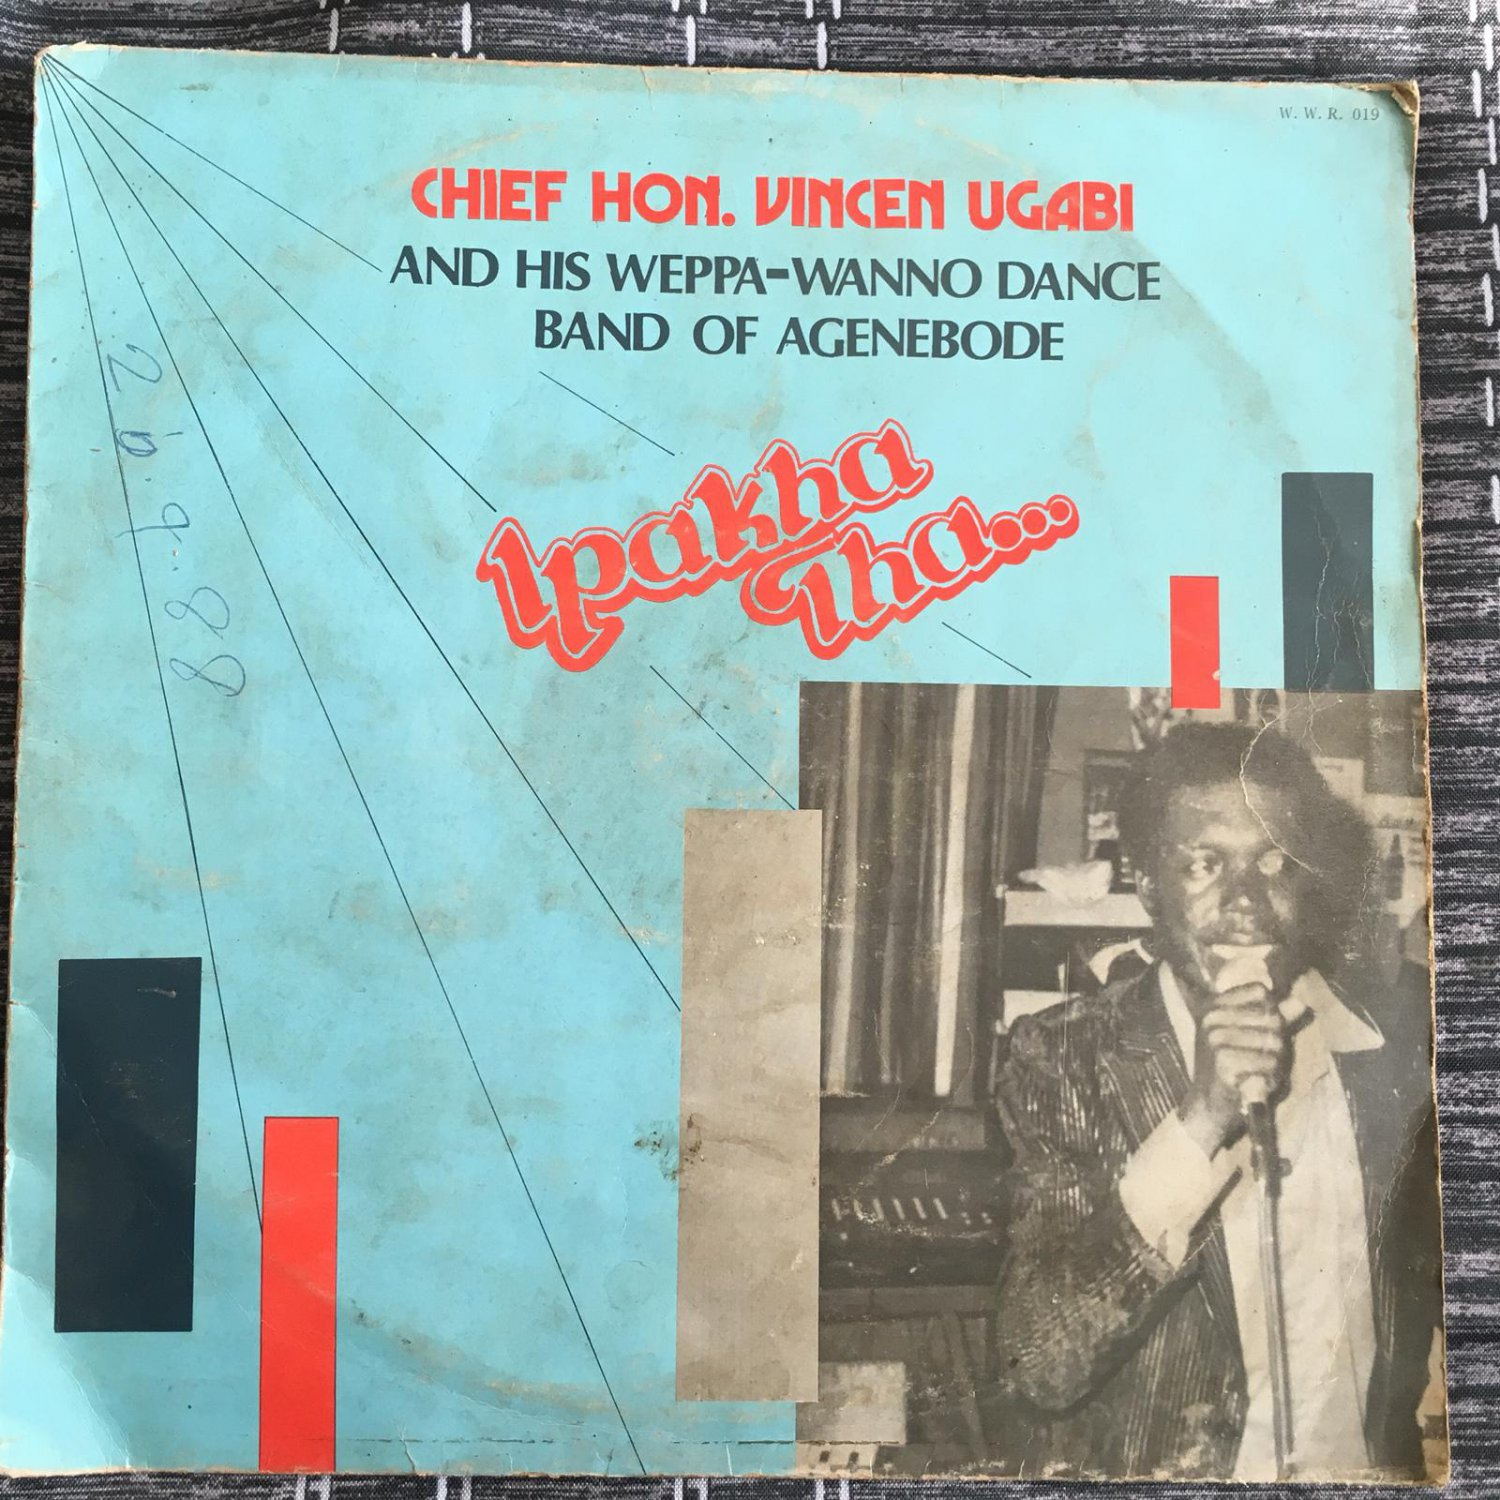 HON. VINCENT UGABI & WEPPA WENNO DANCE BAND LP ipakha NIGERIA HIGHLIFE mp3 LISTEN